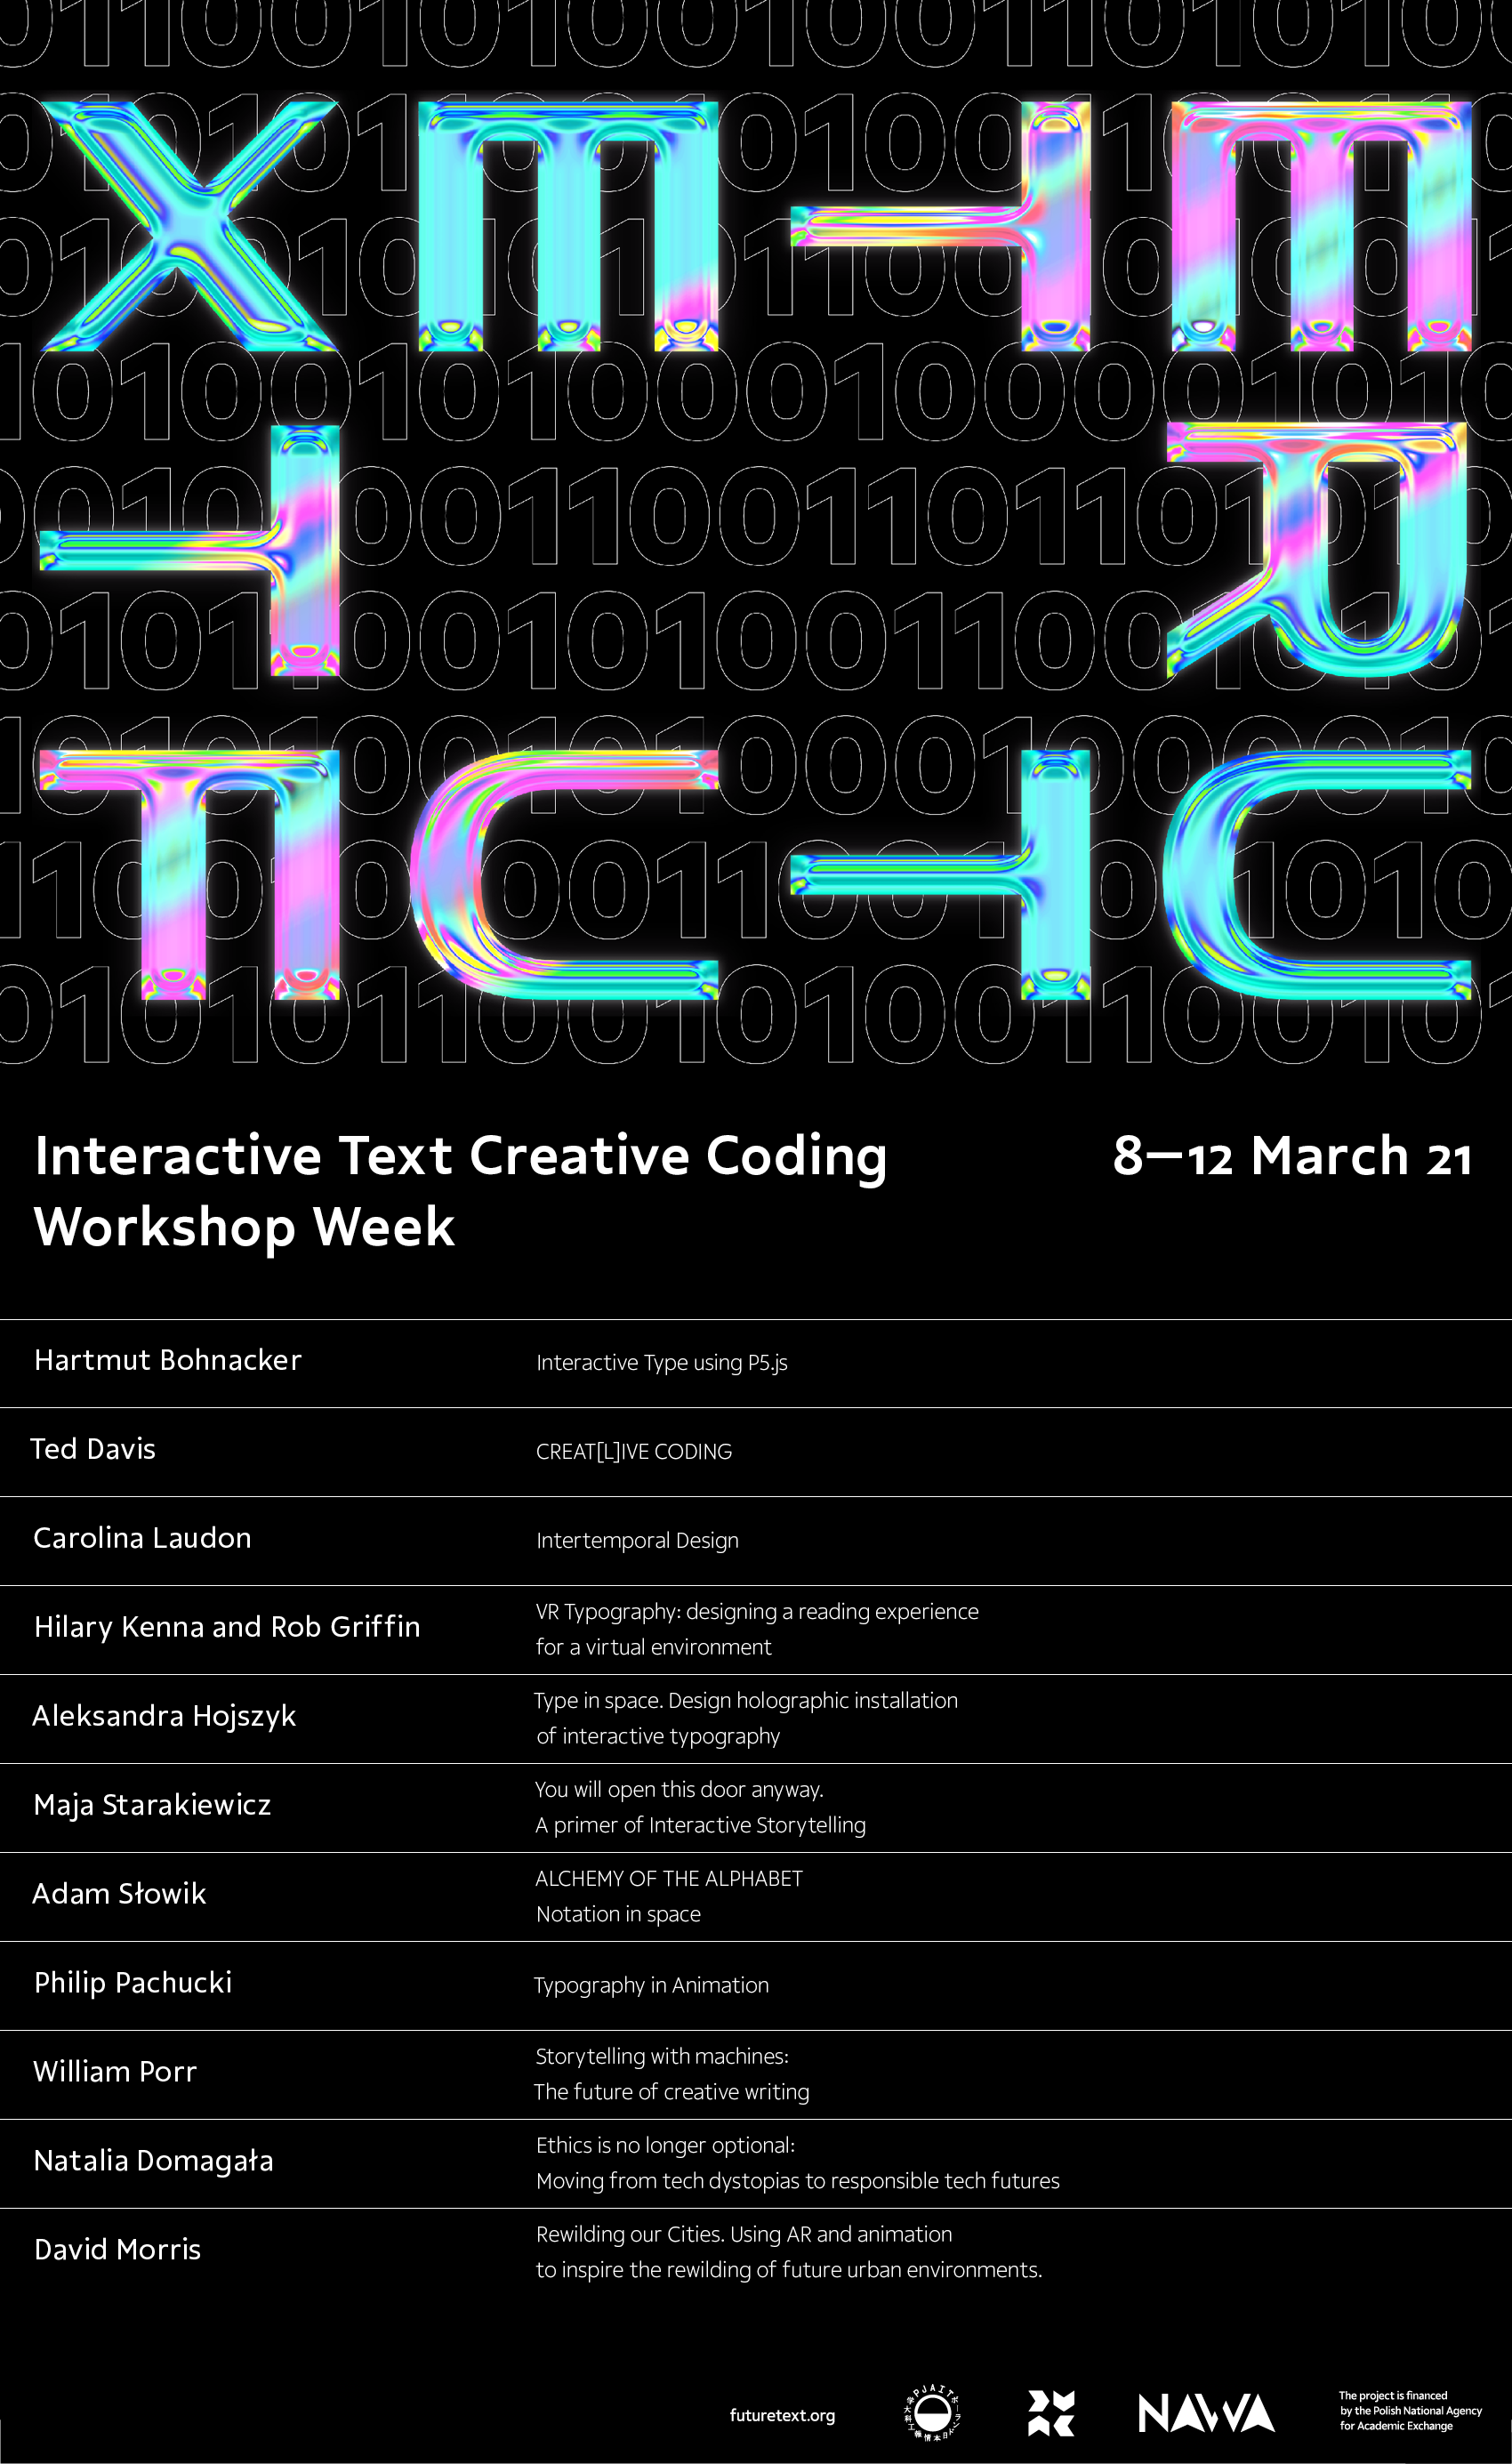 Interactive Text and Creative Coding